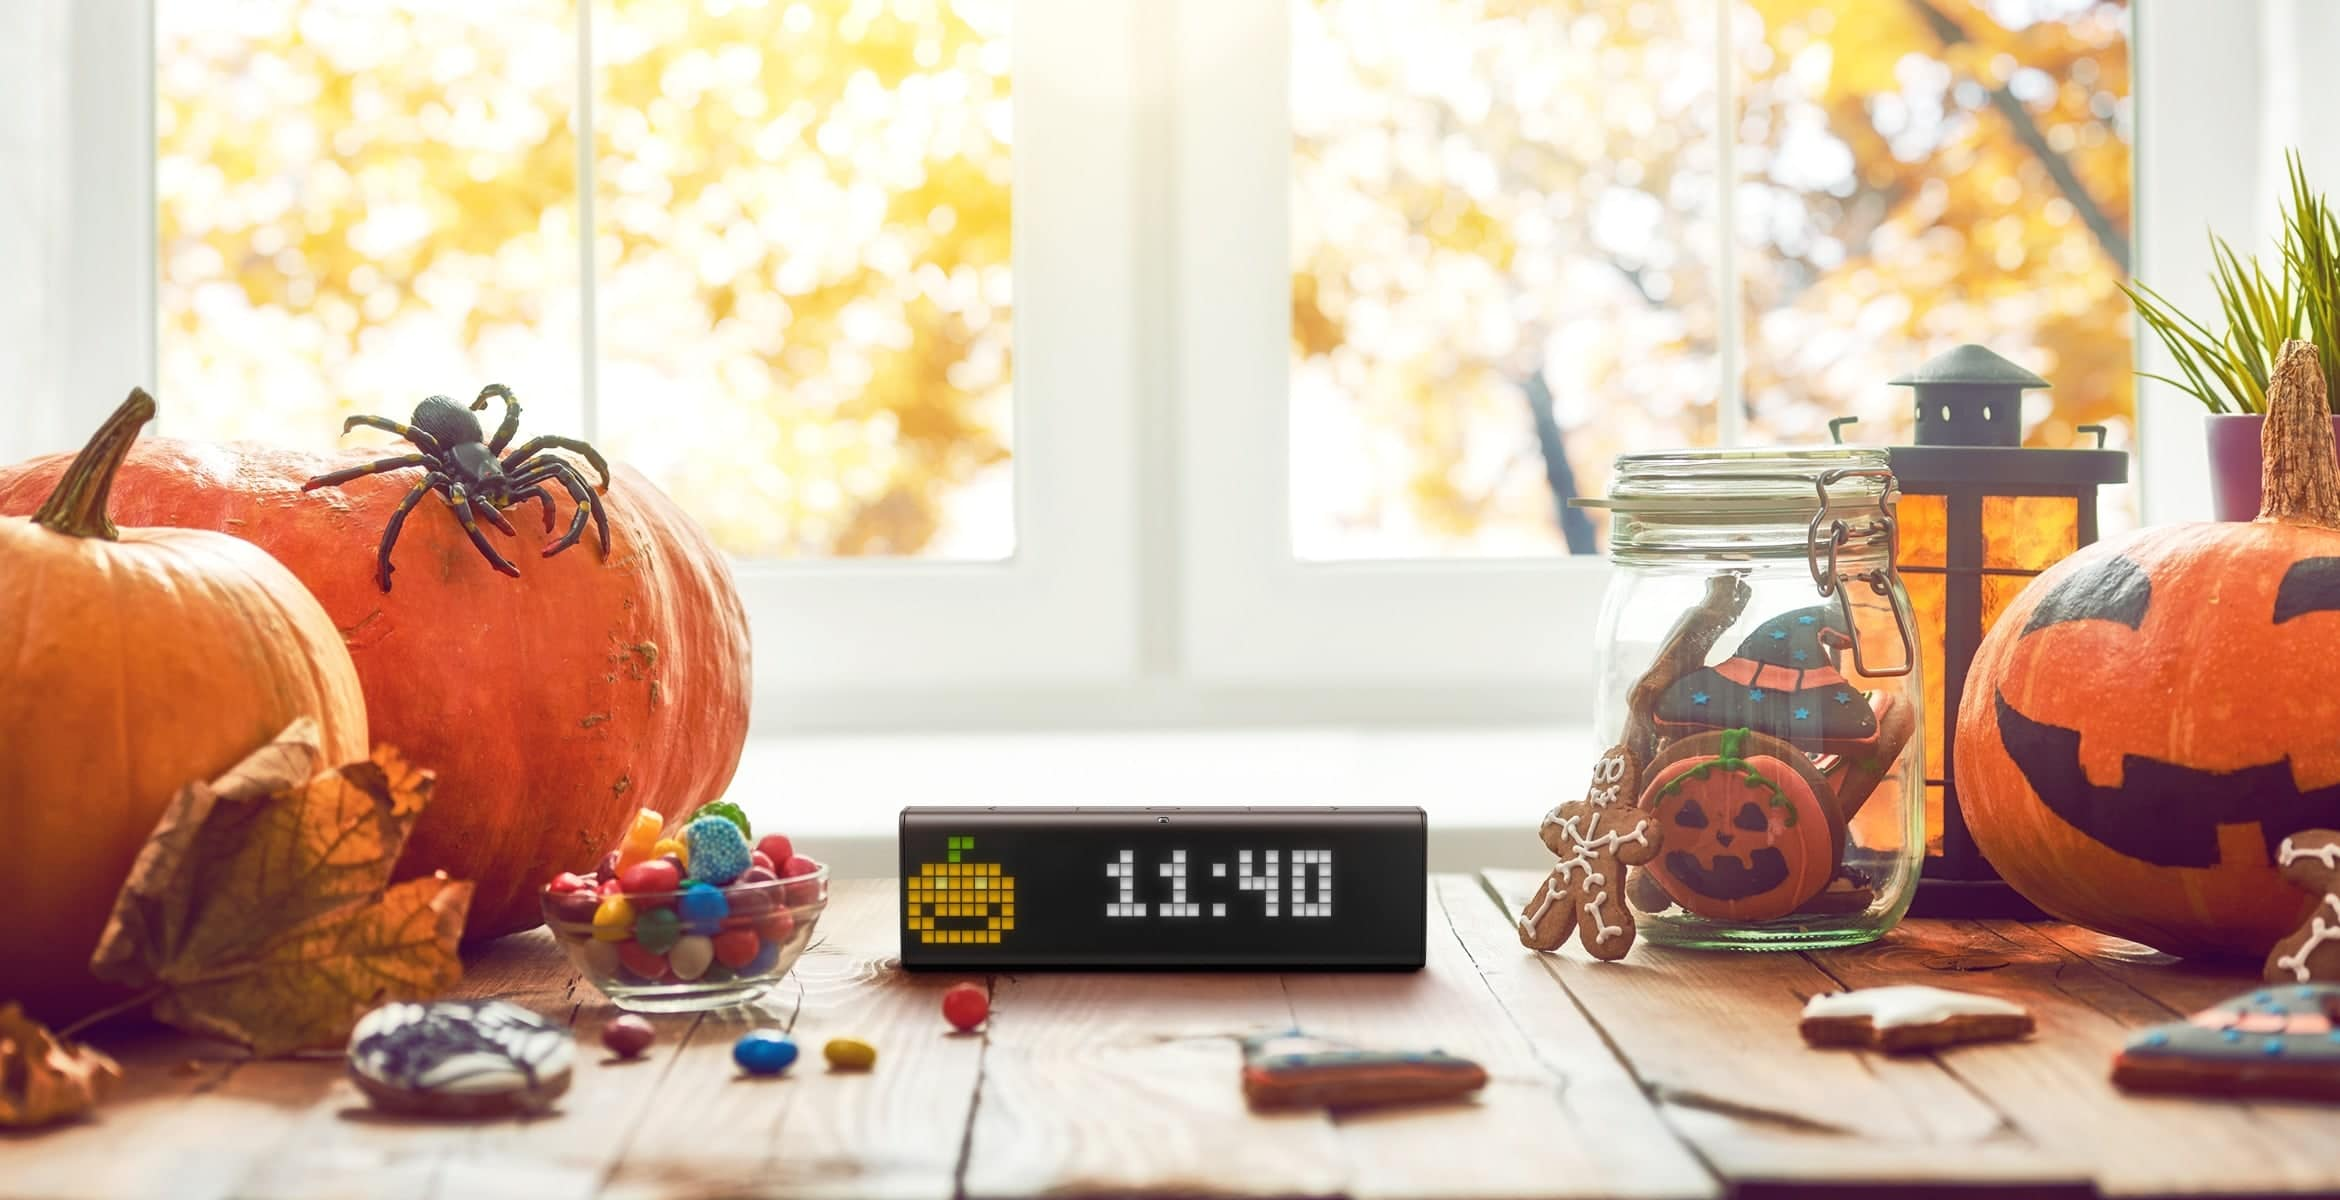 LaMetric Time smart clock displays time and a pumpkin clock face, standing on a table with Halloween decorations